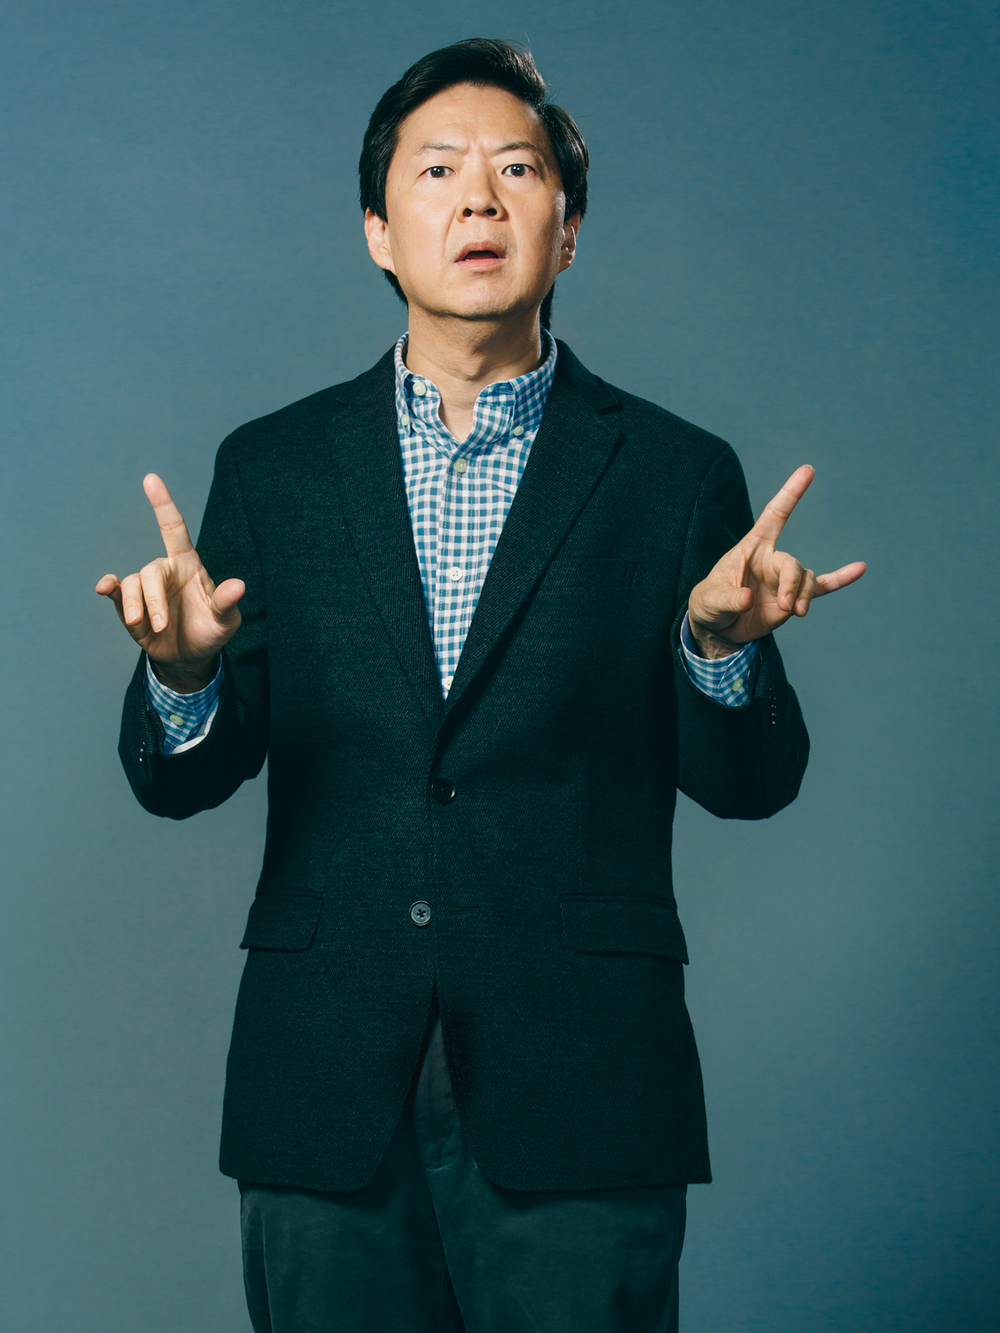 Ken Jeong: Actor, Comedian